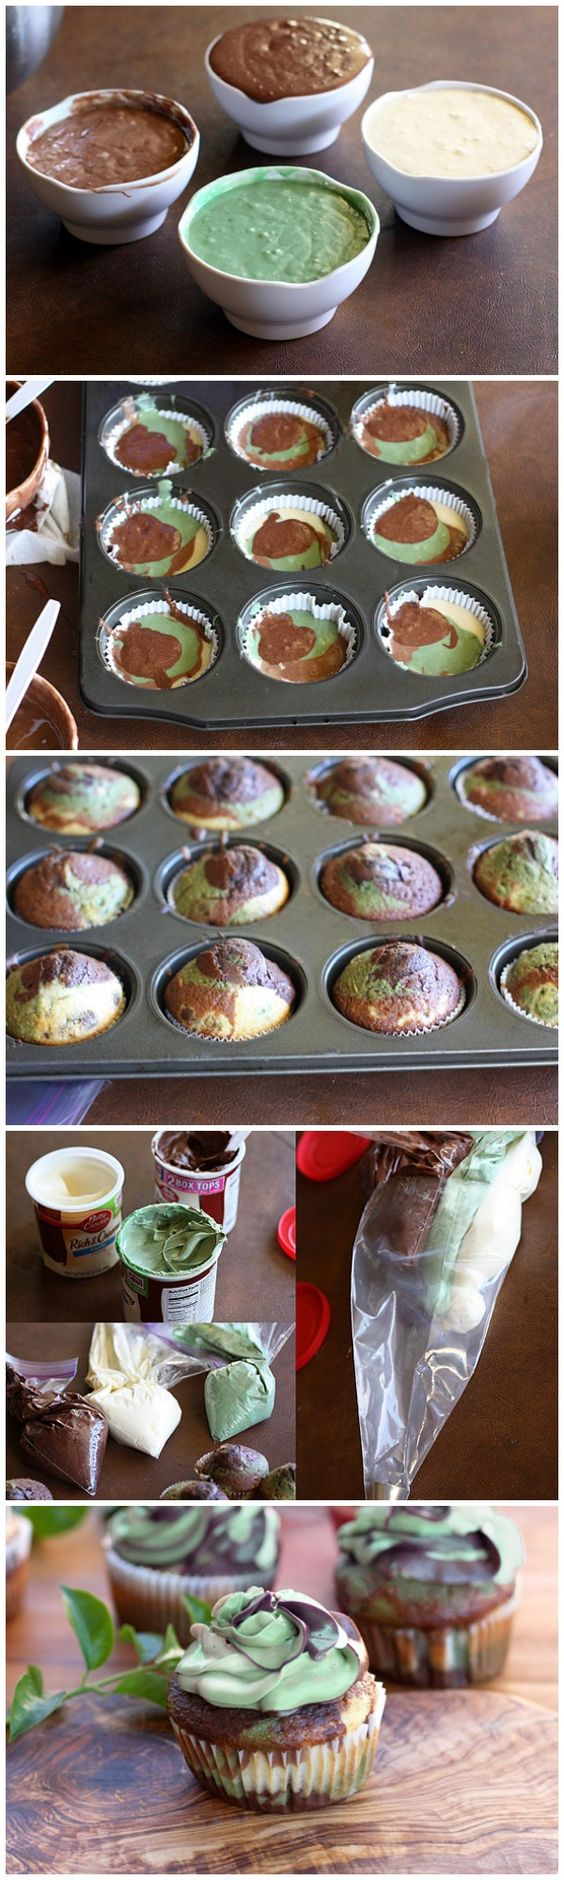 Camo Cupcakes   definately gonna try this!!!! Shelby would flip!!!!!